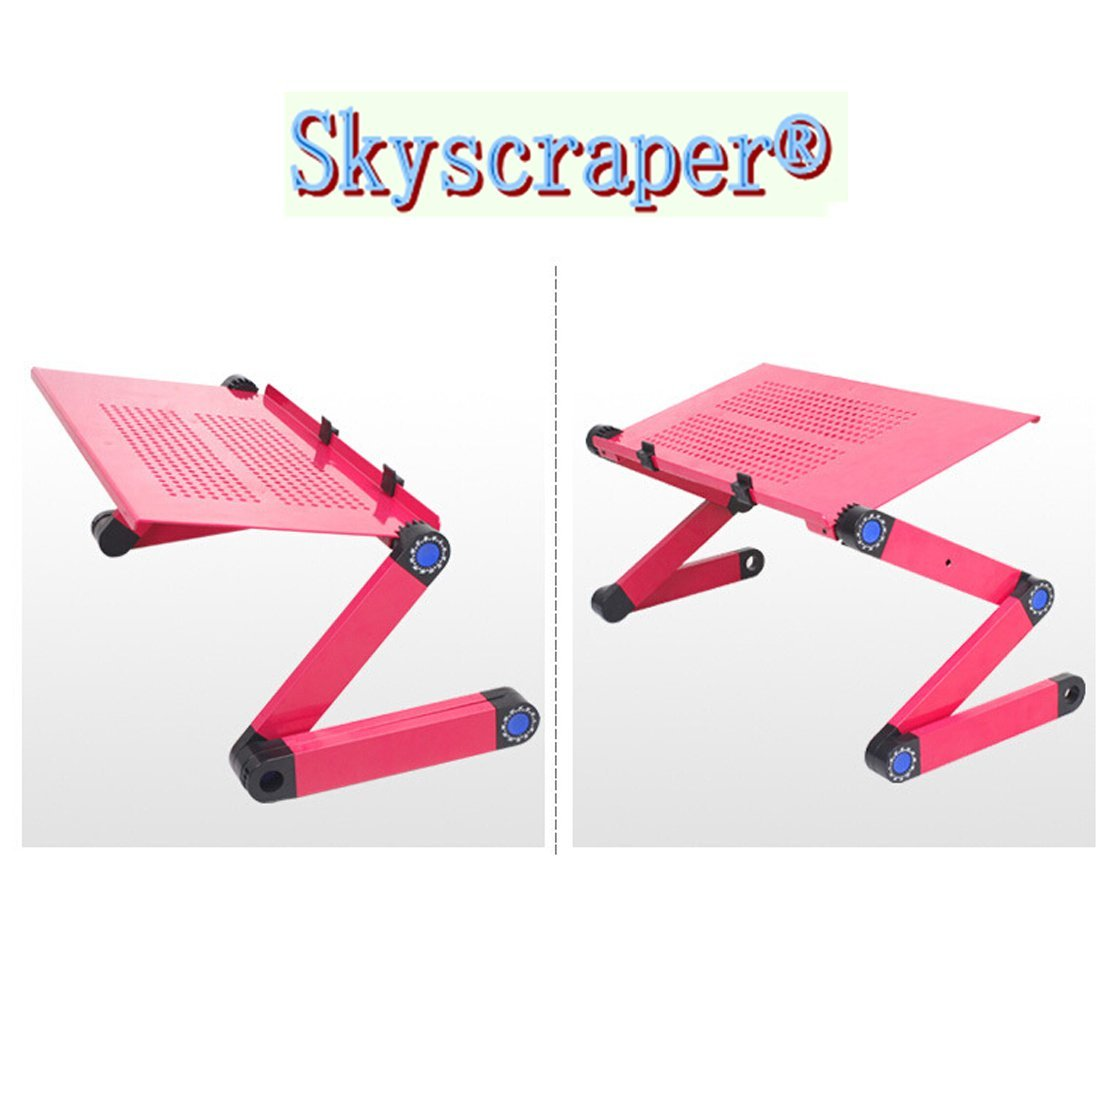 Skyscraper USB Fan Adjustable Vented Laptop Table Laptop Computer Desk Portable Bed Tray Book Stand Multifuctional & Ergonomics Design Dual Layer Tabletop (Pink)